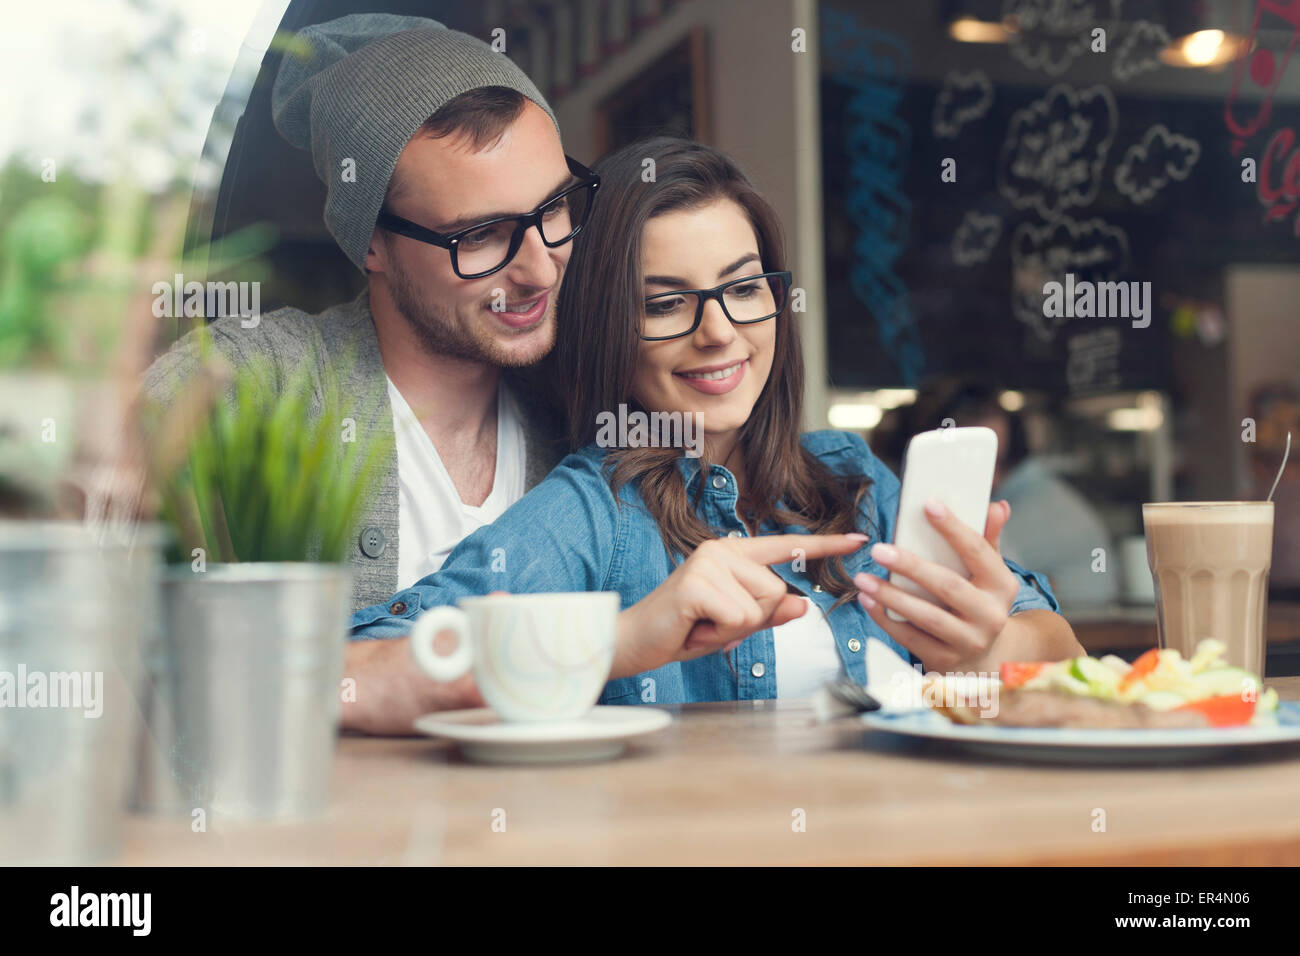 Couple Embracing using mobile phone in cafe. Cracovie, Pologne Photo Stock